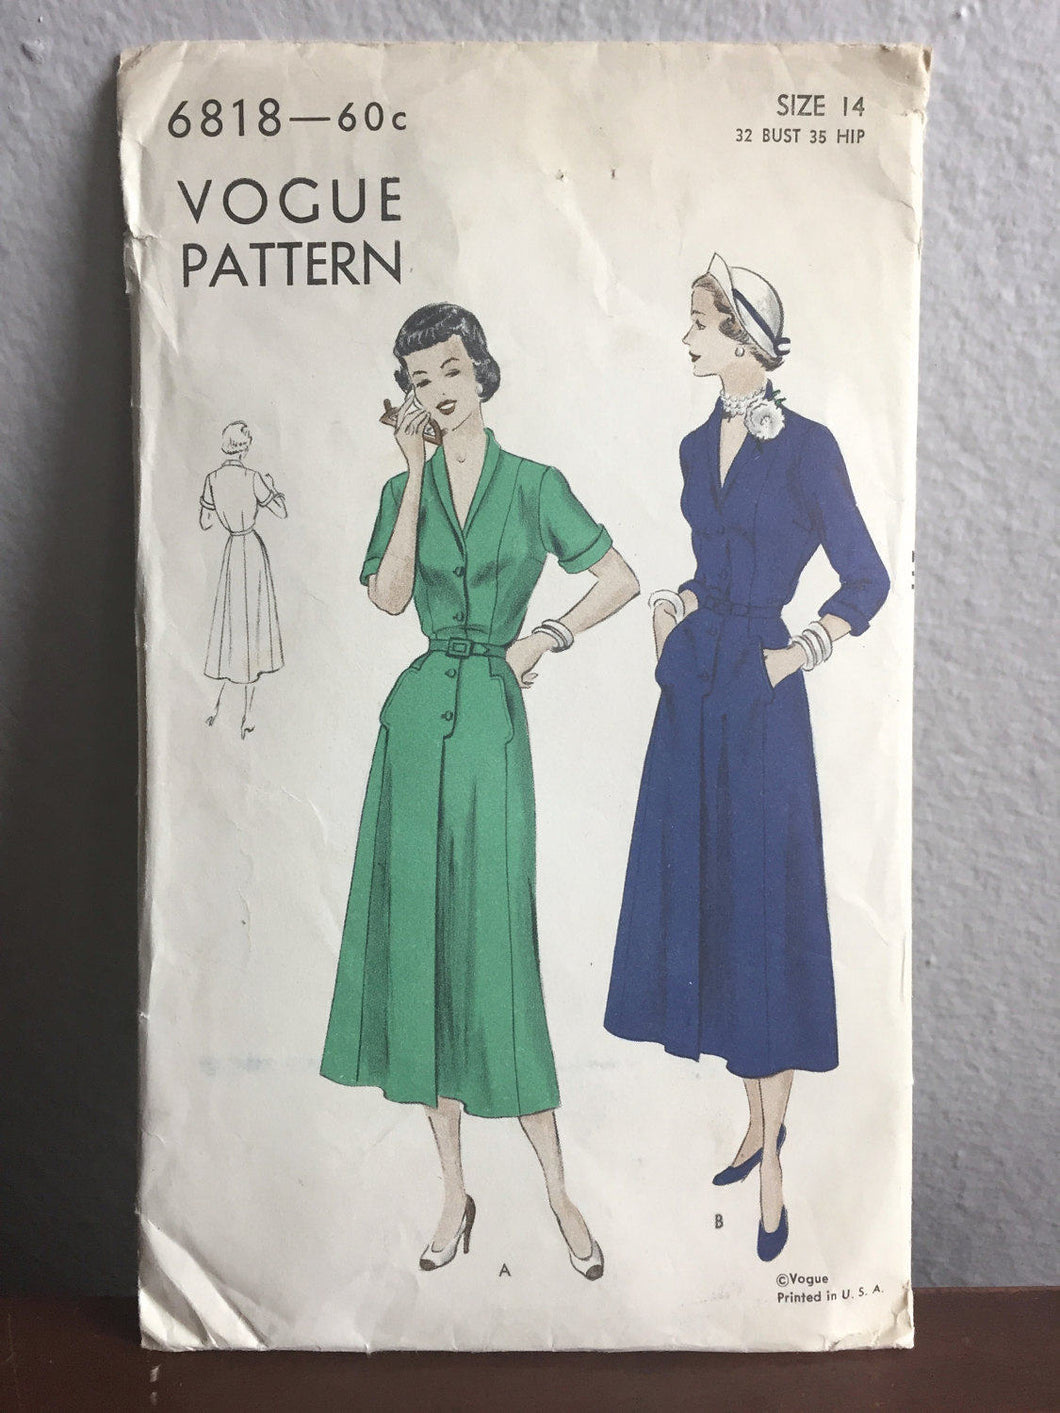 1940's Vogue Day Dress with Pockets and Button Up Front Pattern - Bust 32